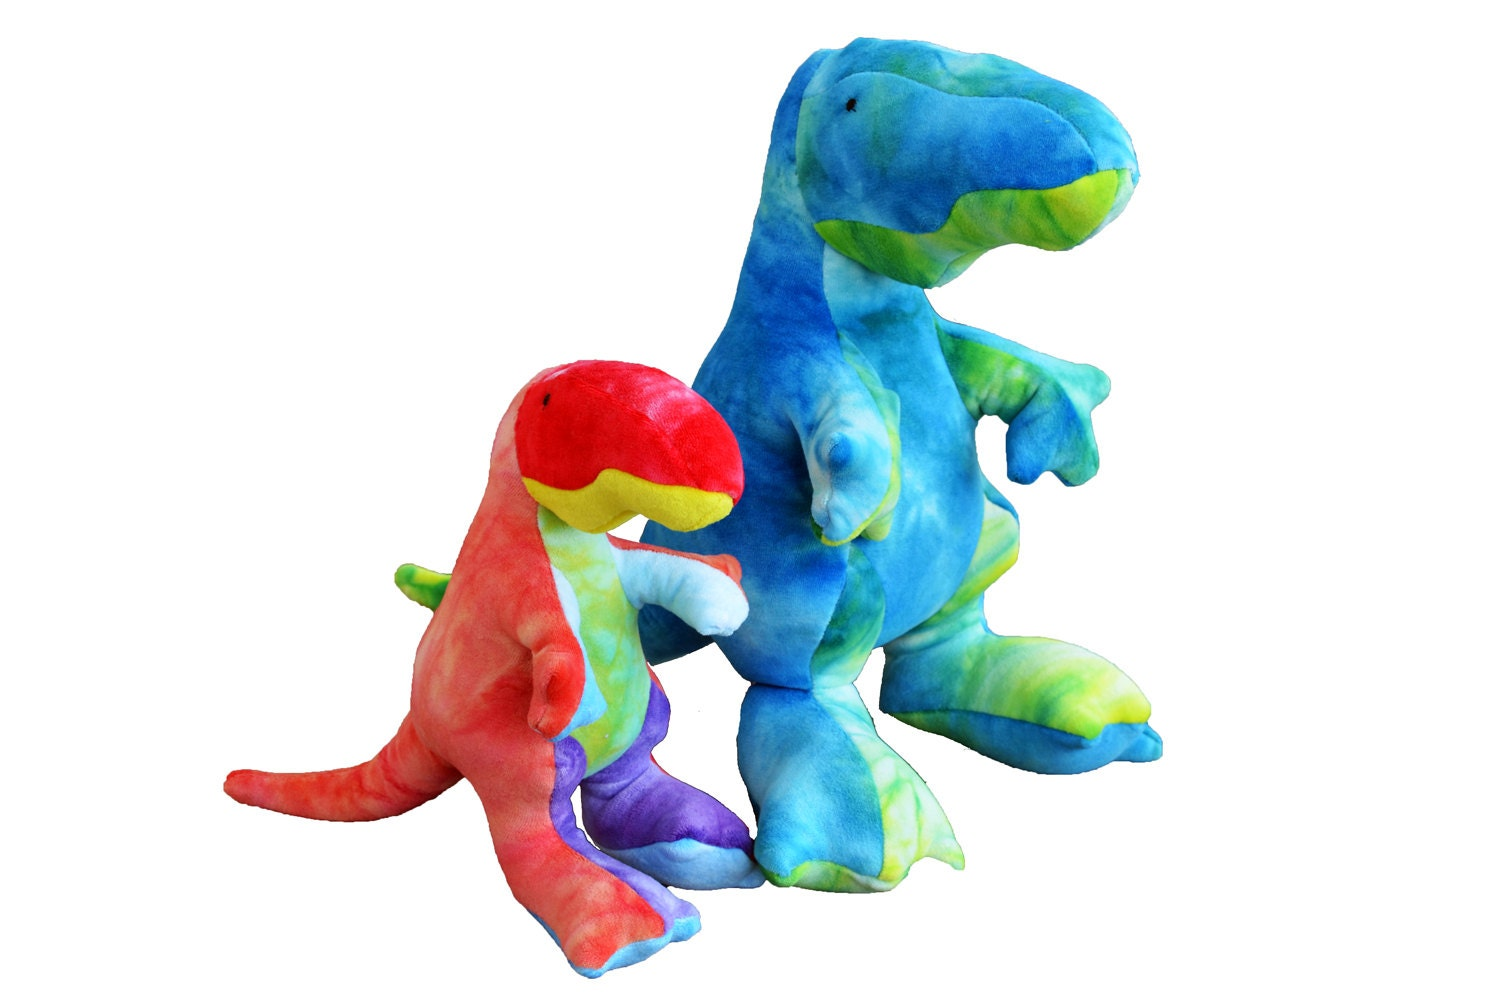 Giant Dinosaur Toy : Unavailable listing on etsy